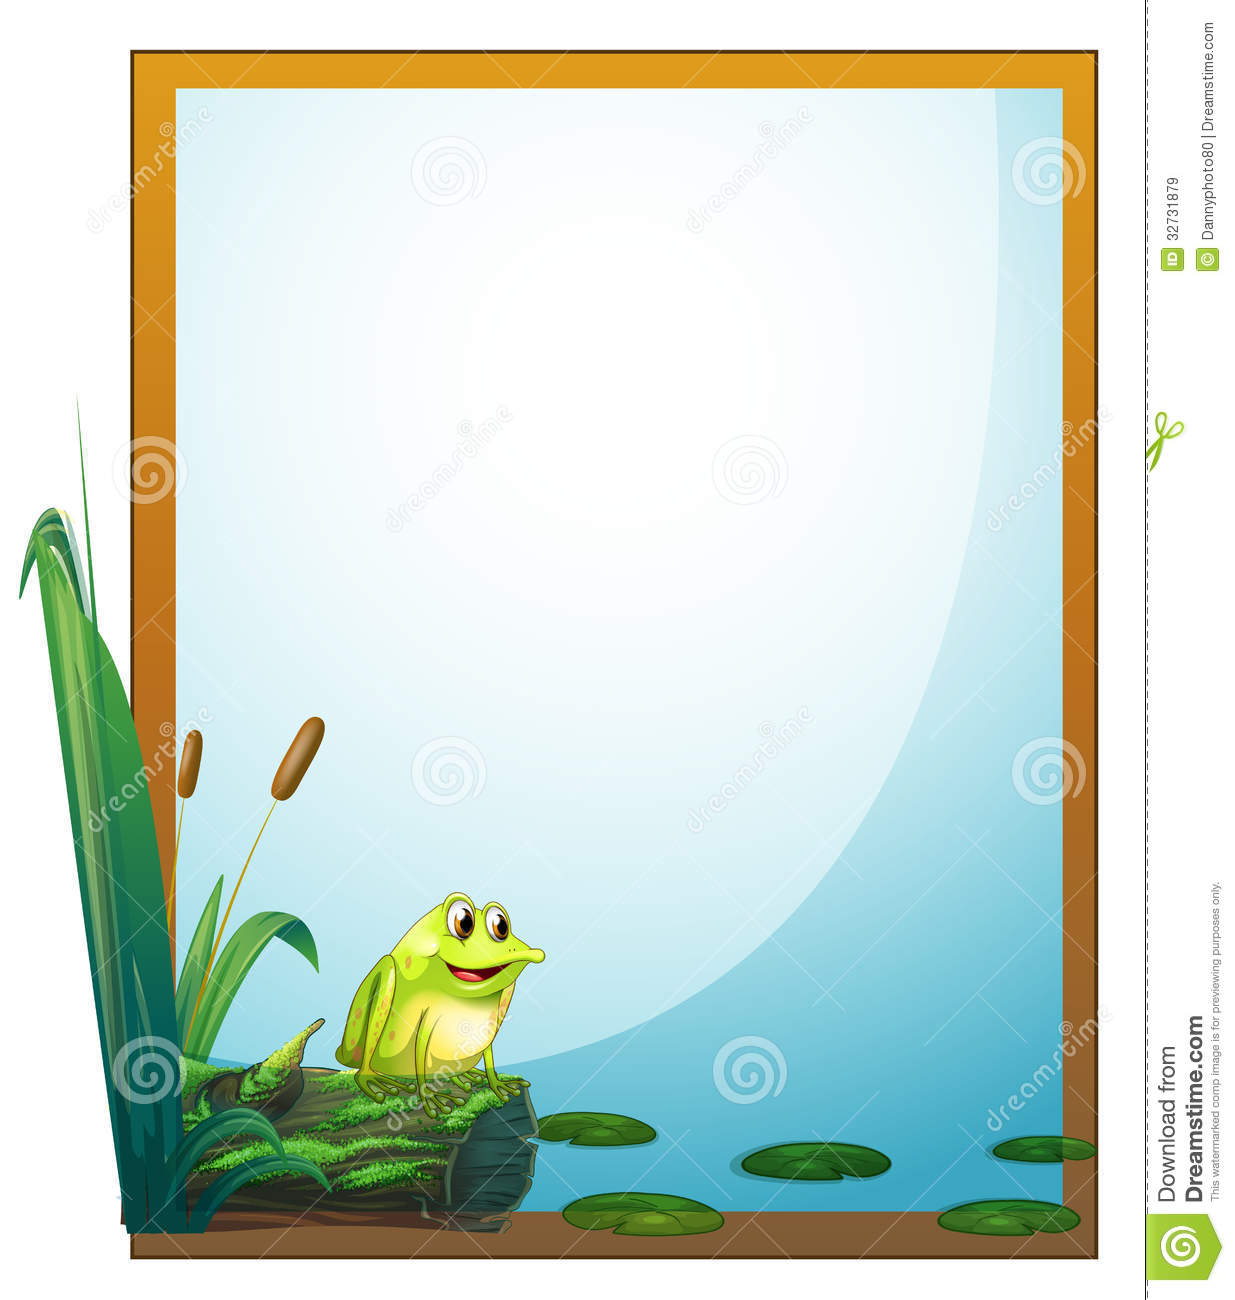 A Frame With A Frog In The Pond Royalty Free Stock Images - Image: 32731879